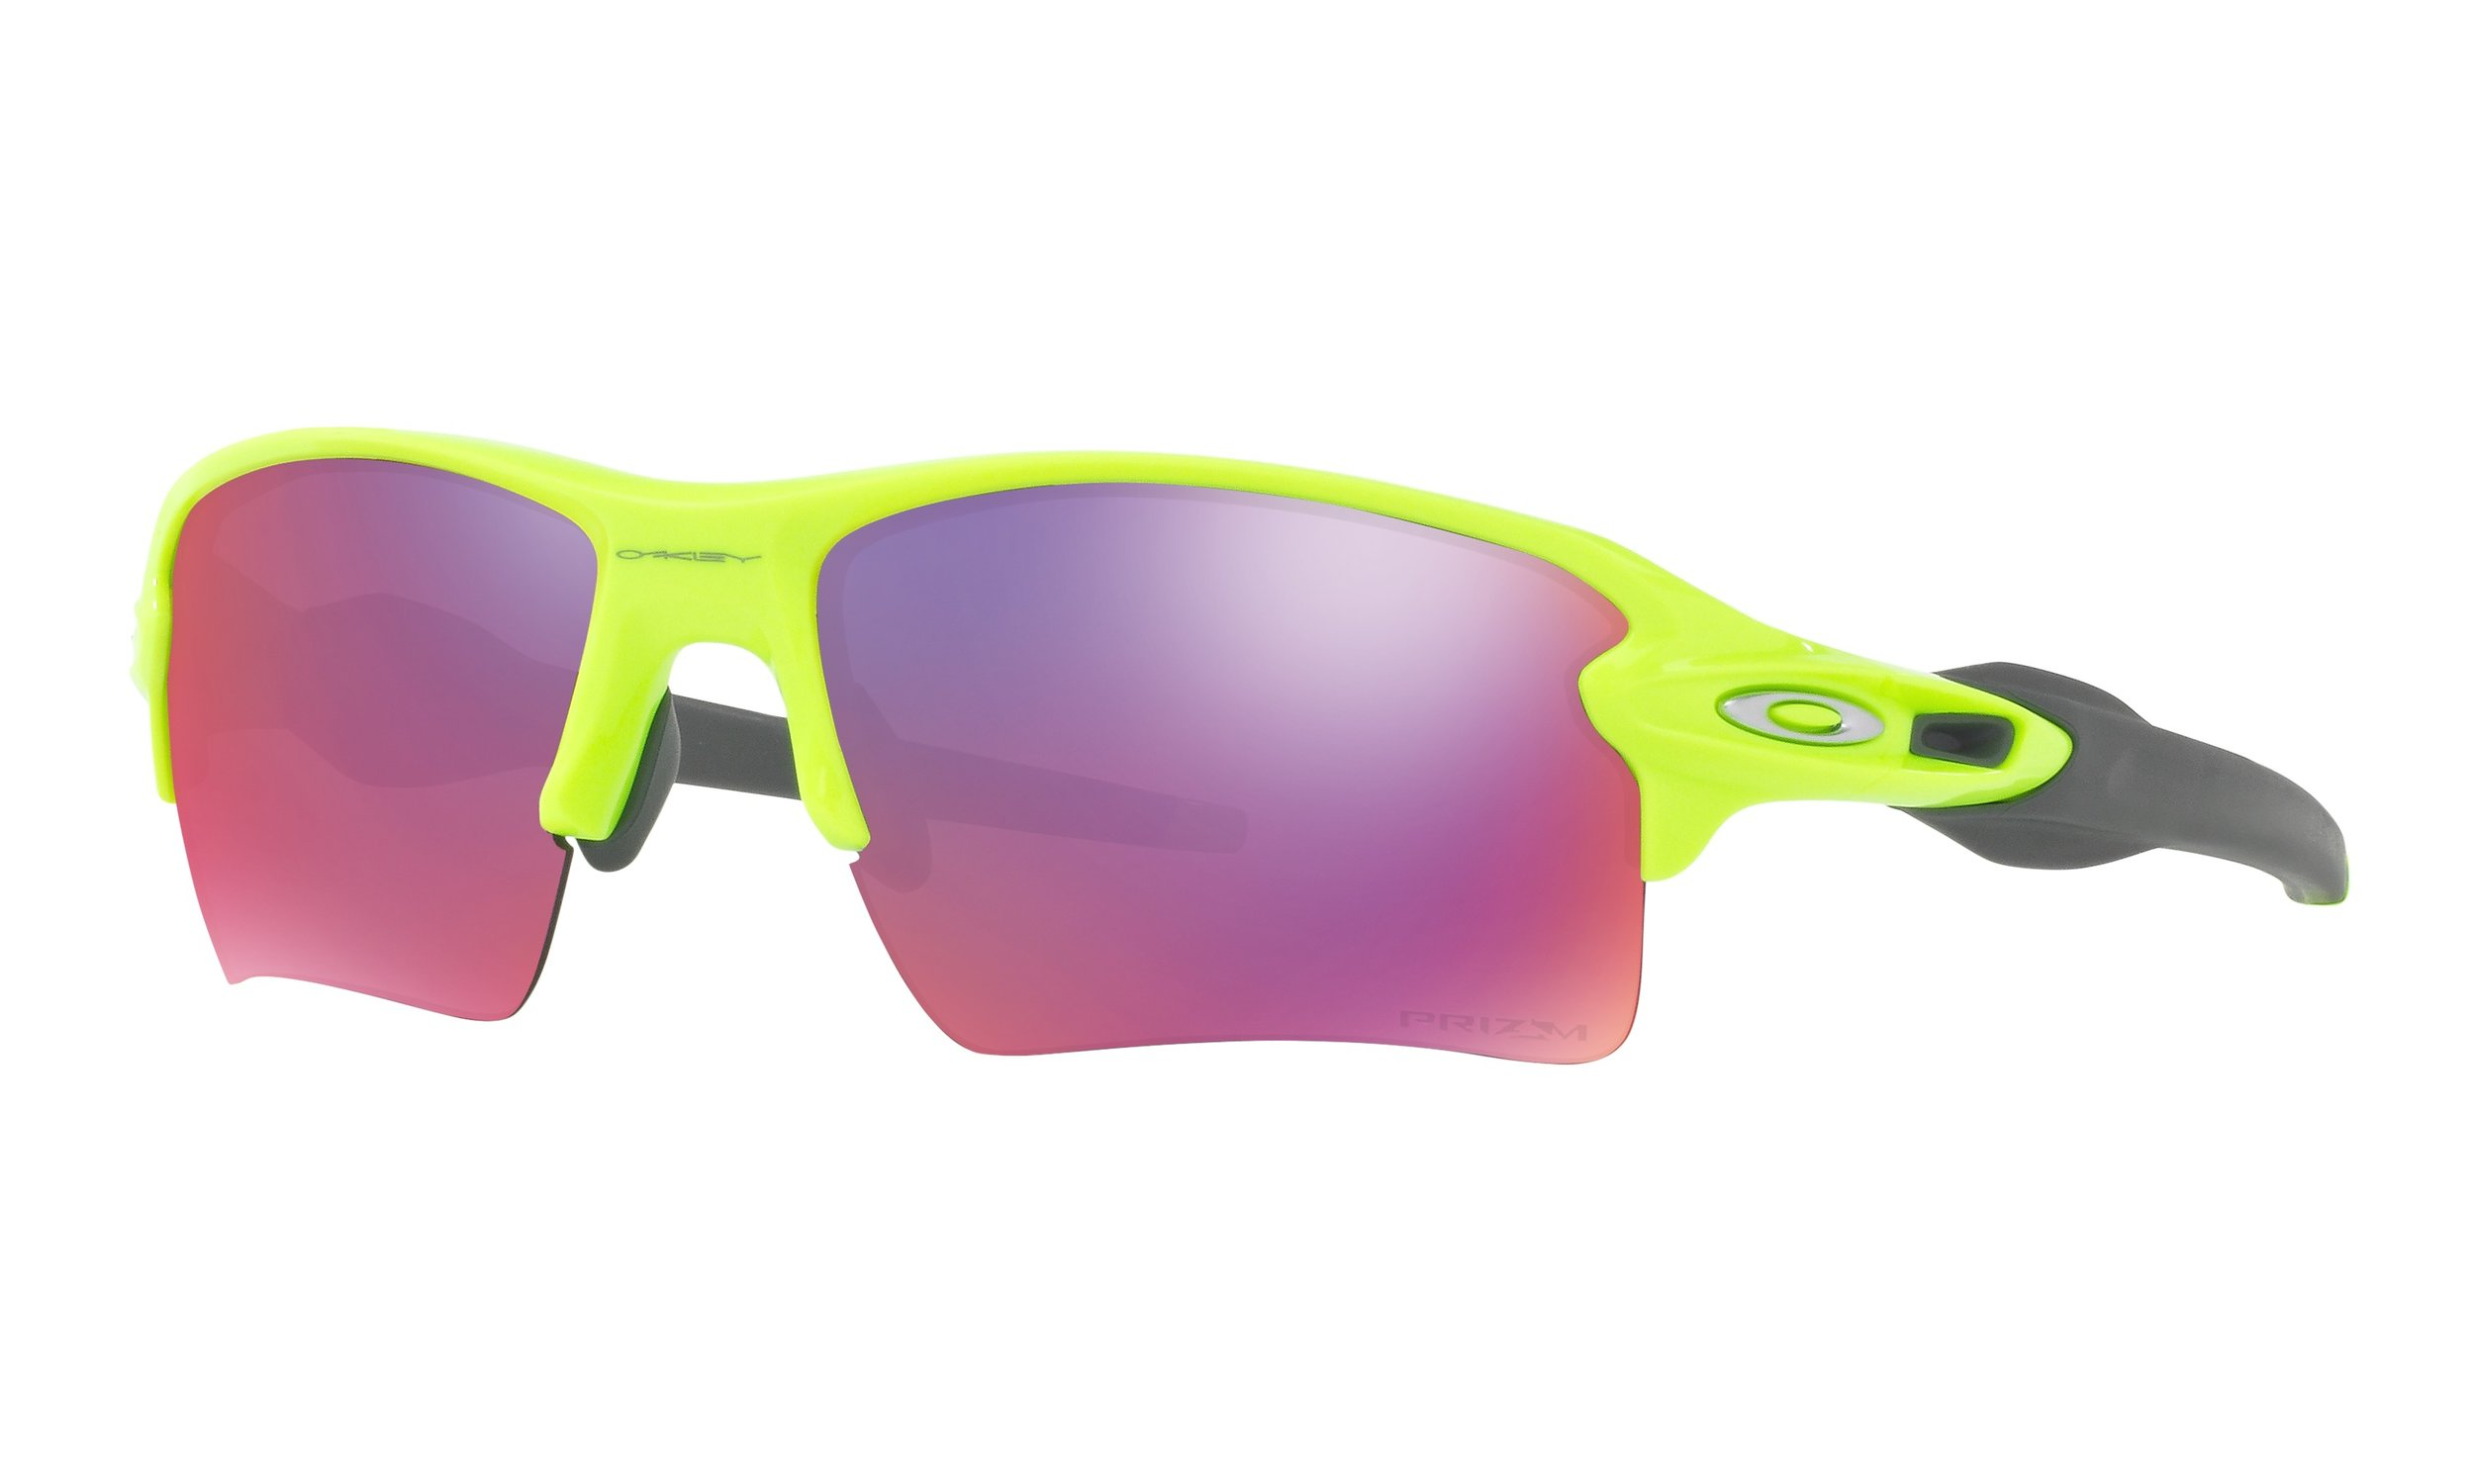 FLAK™ 2.0 XL PRIZM™ ROAD RETINA BURN COLLECTION  - Oakley engineering takes performance to the next level. Flak 2.0 offers a standard size frame with enhanced lens coverage.